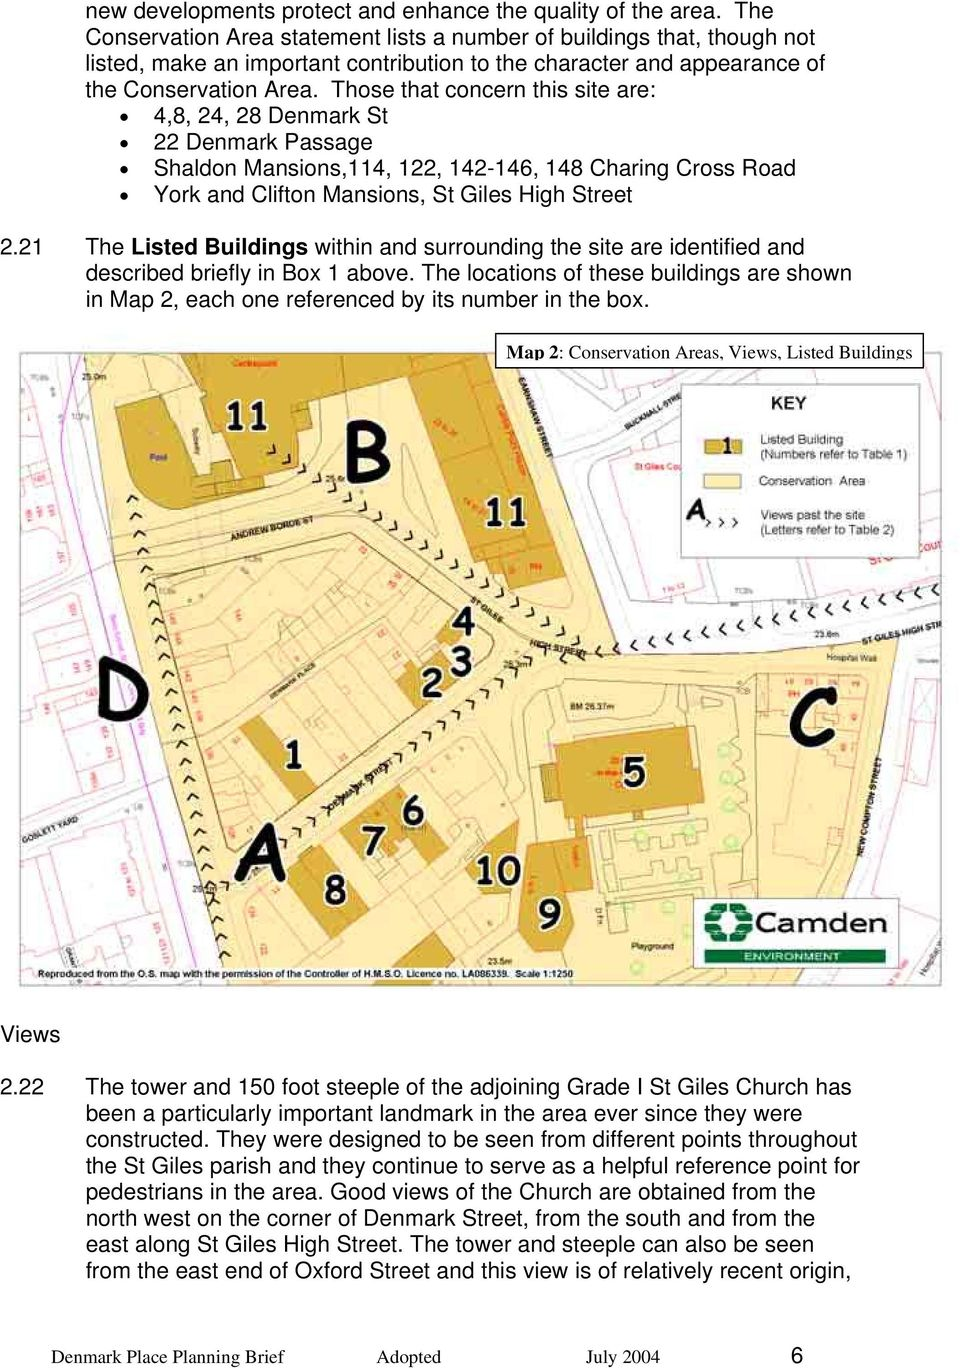 Those that concern this site are: 4,8, 24, 28 Denmark St 22 Denmark Passage Shaldon Mansions,114, 122, 142-146, 148 Charing Cross Road York and Clifton Mansions, St Giles High Street 2.